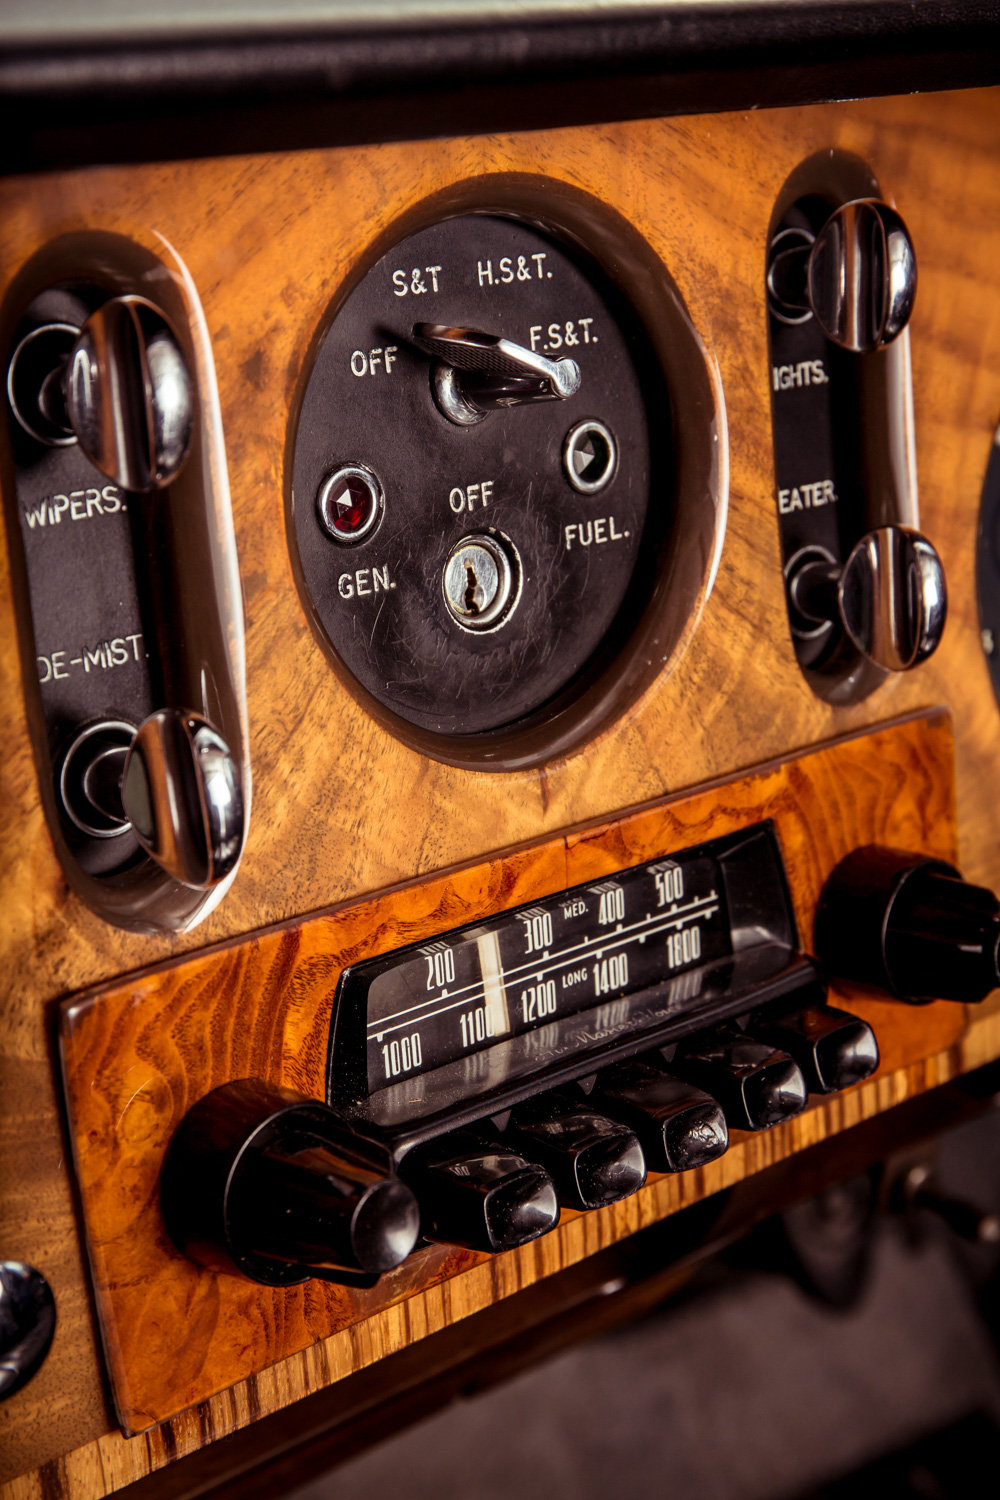 1959 Bentley S2 Continental Flying Spur gauges switches